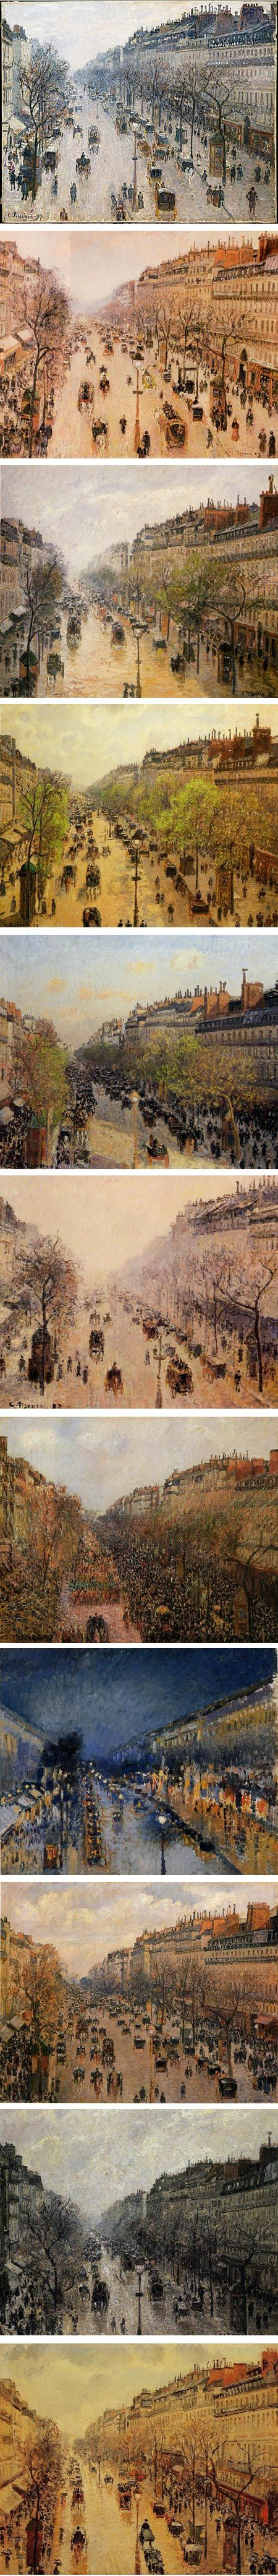 Pissaro's paintings from his hotel window. Different days + different seasons. Read more...http://jackiejacobson.com/07/pissarro-montmartre/